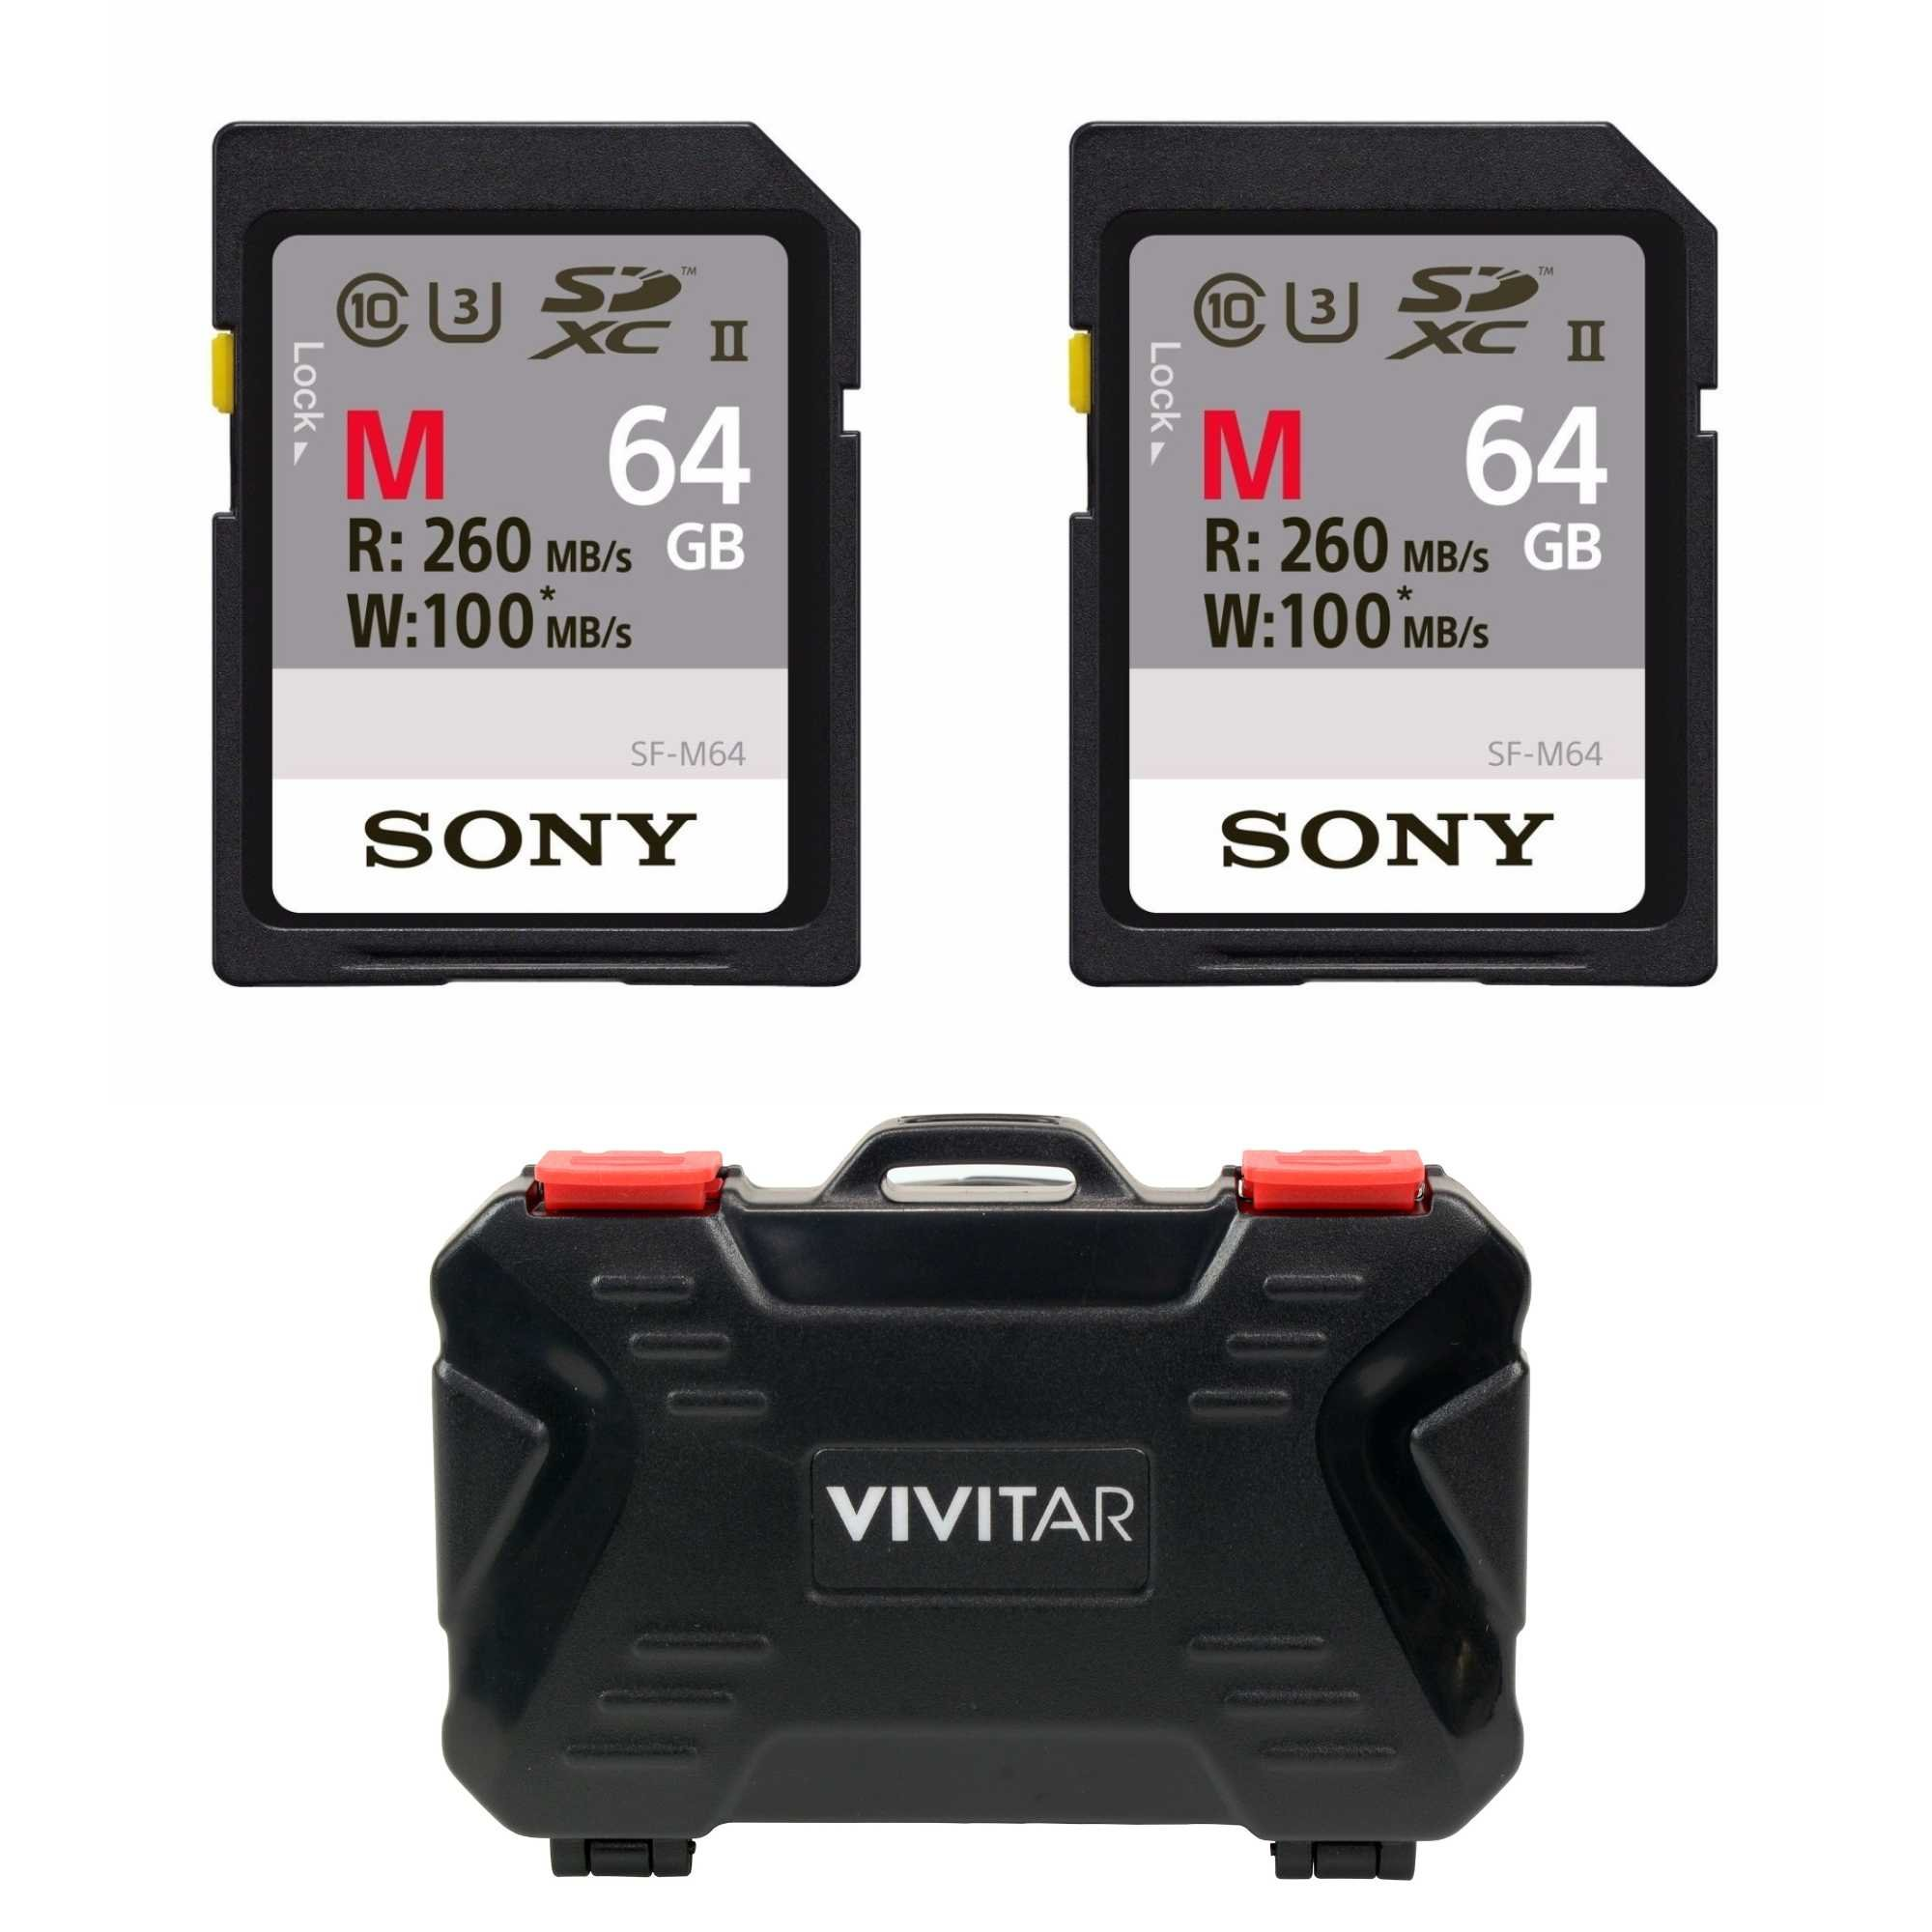 Sony 64GB M Series UHS-II SDXC Memory Card (U3) 2-Pack with Versatile Memory Card Holder by Sony